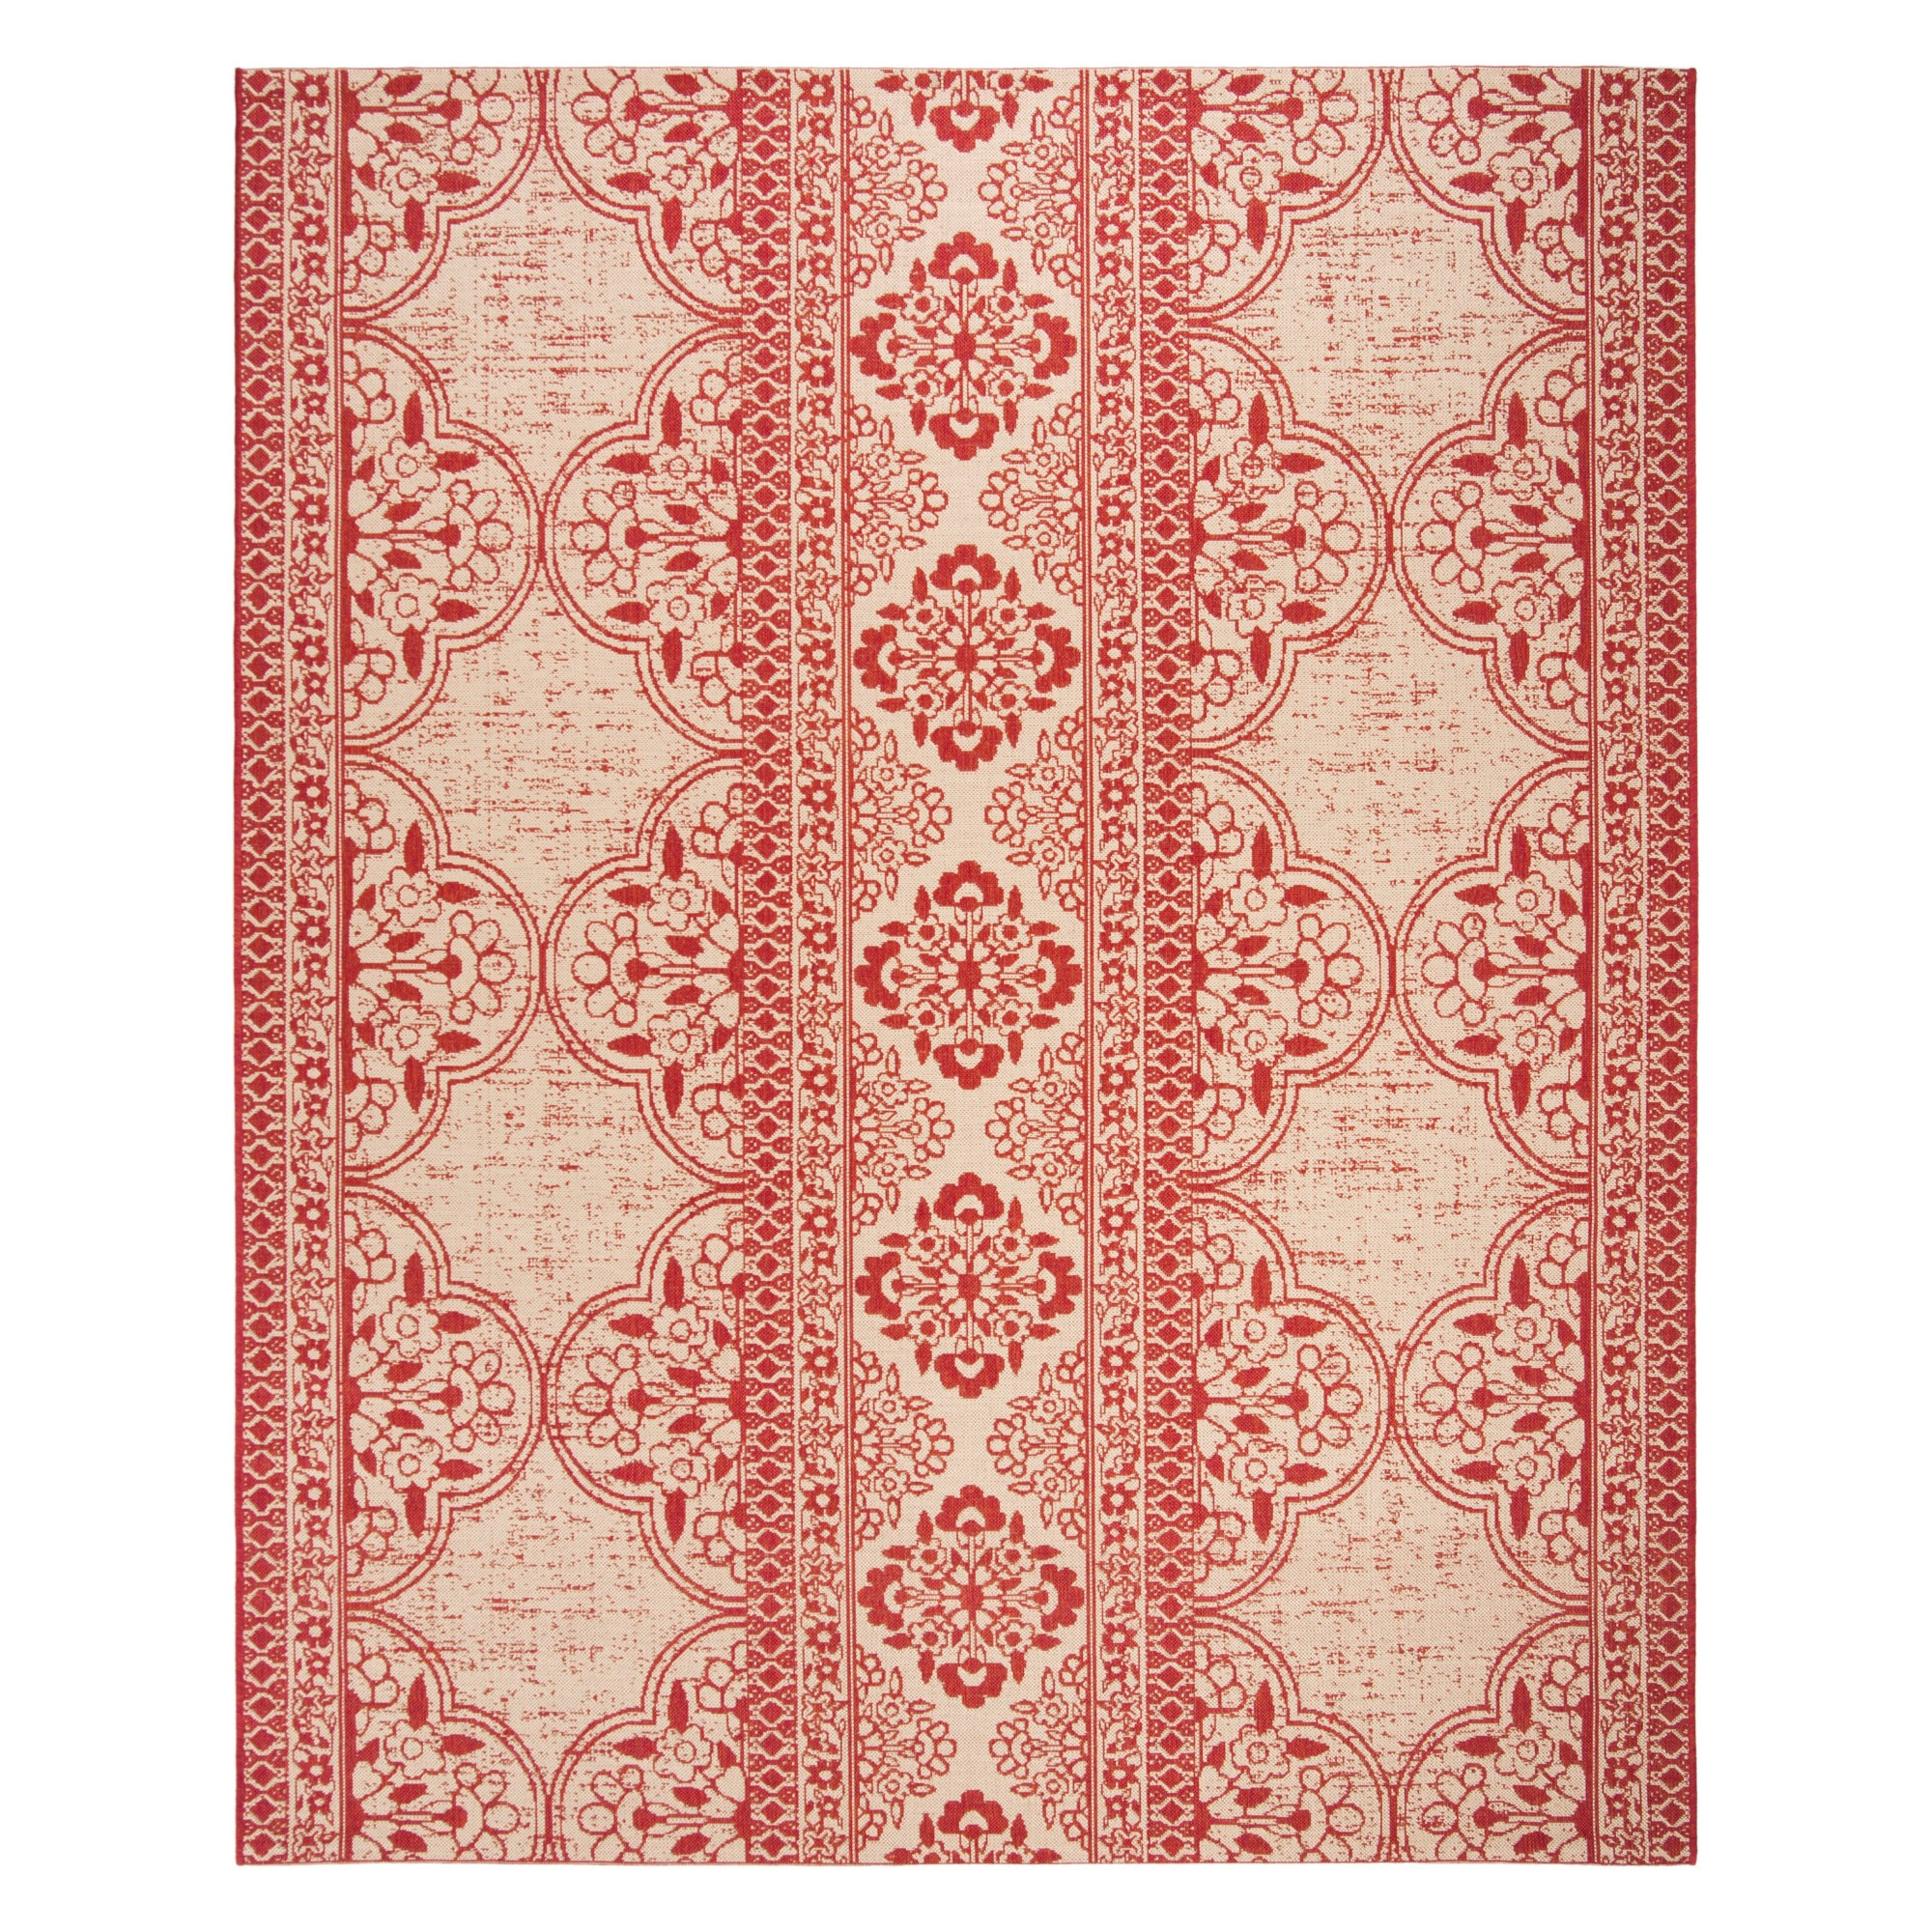 8'X10' Medallion Loomed Area Rug Red/Cream (Red/Ivory) - Safavieh